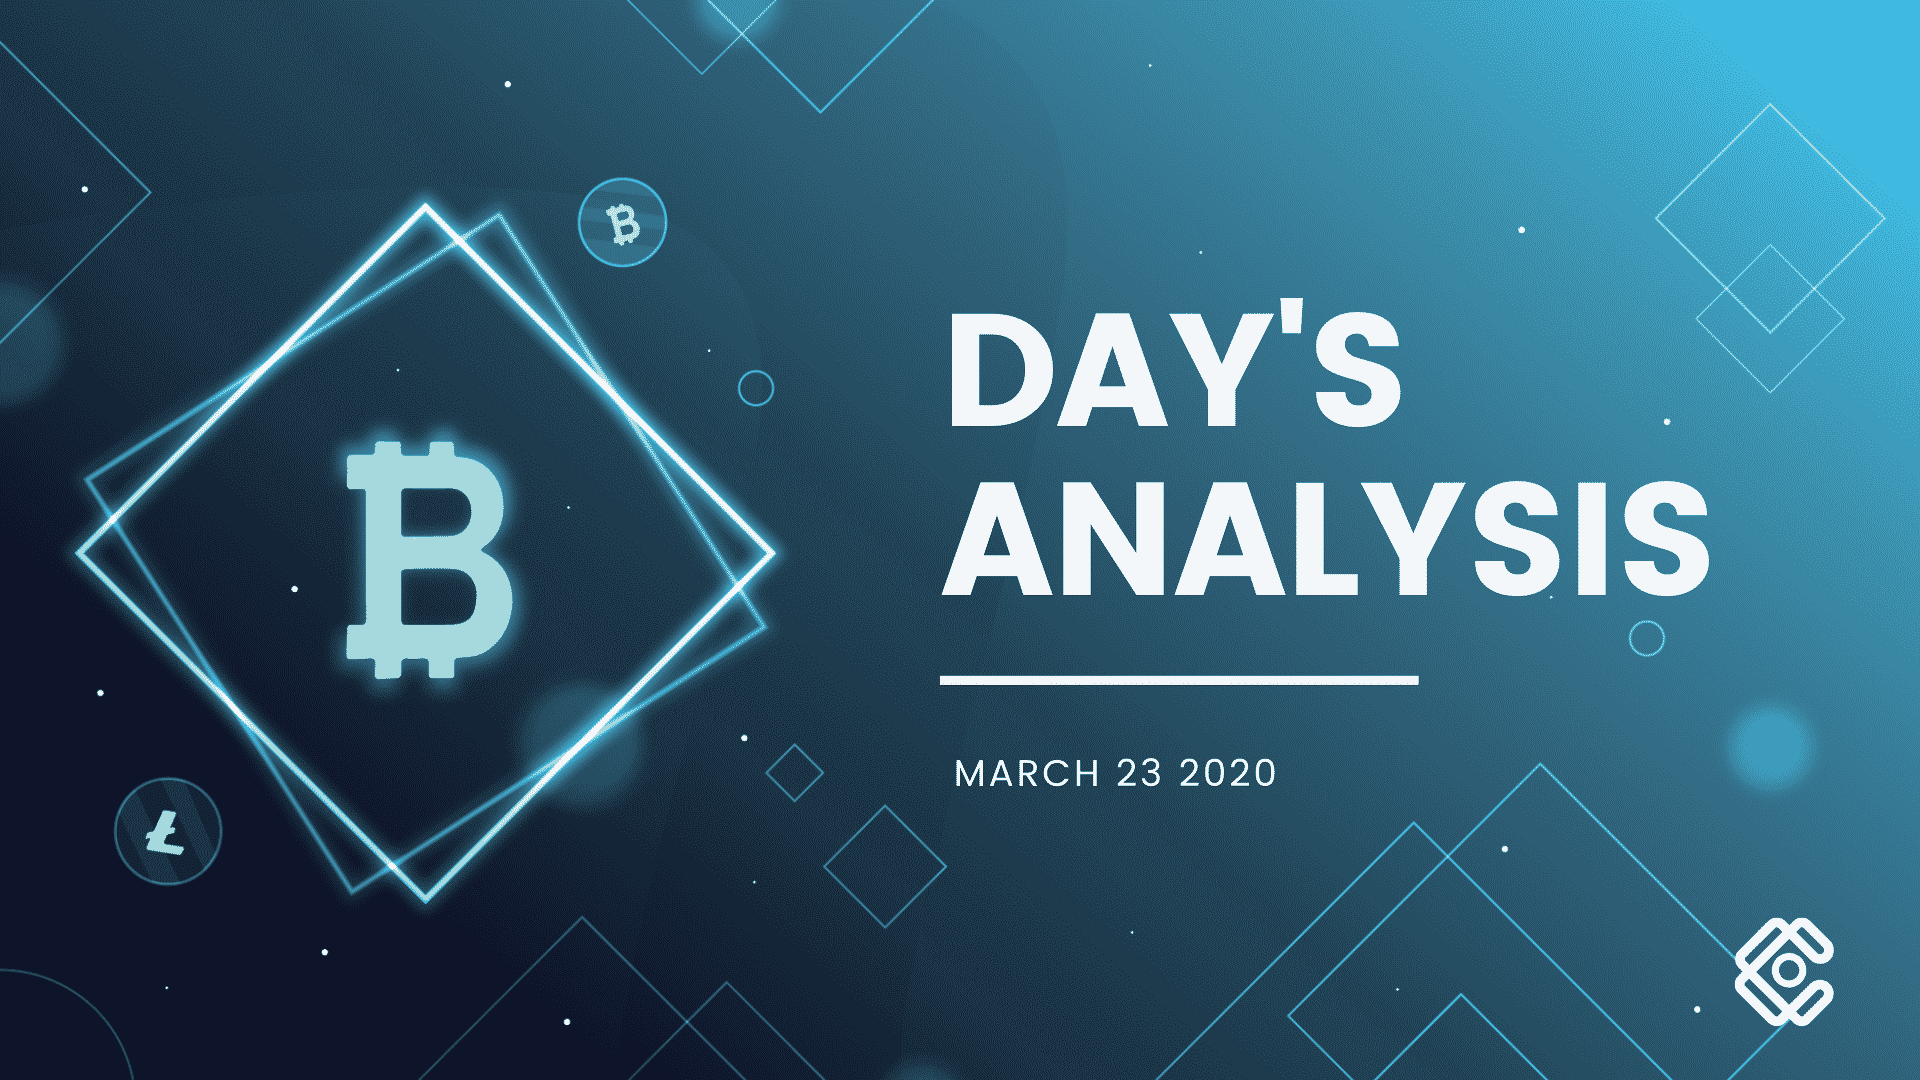 Market Analysis of March 23, 2020